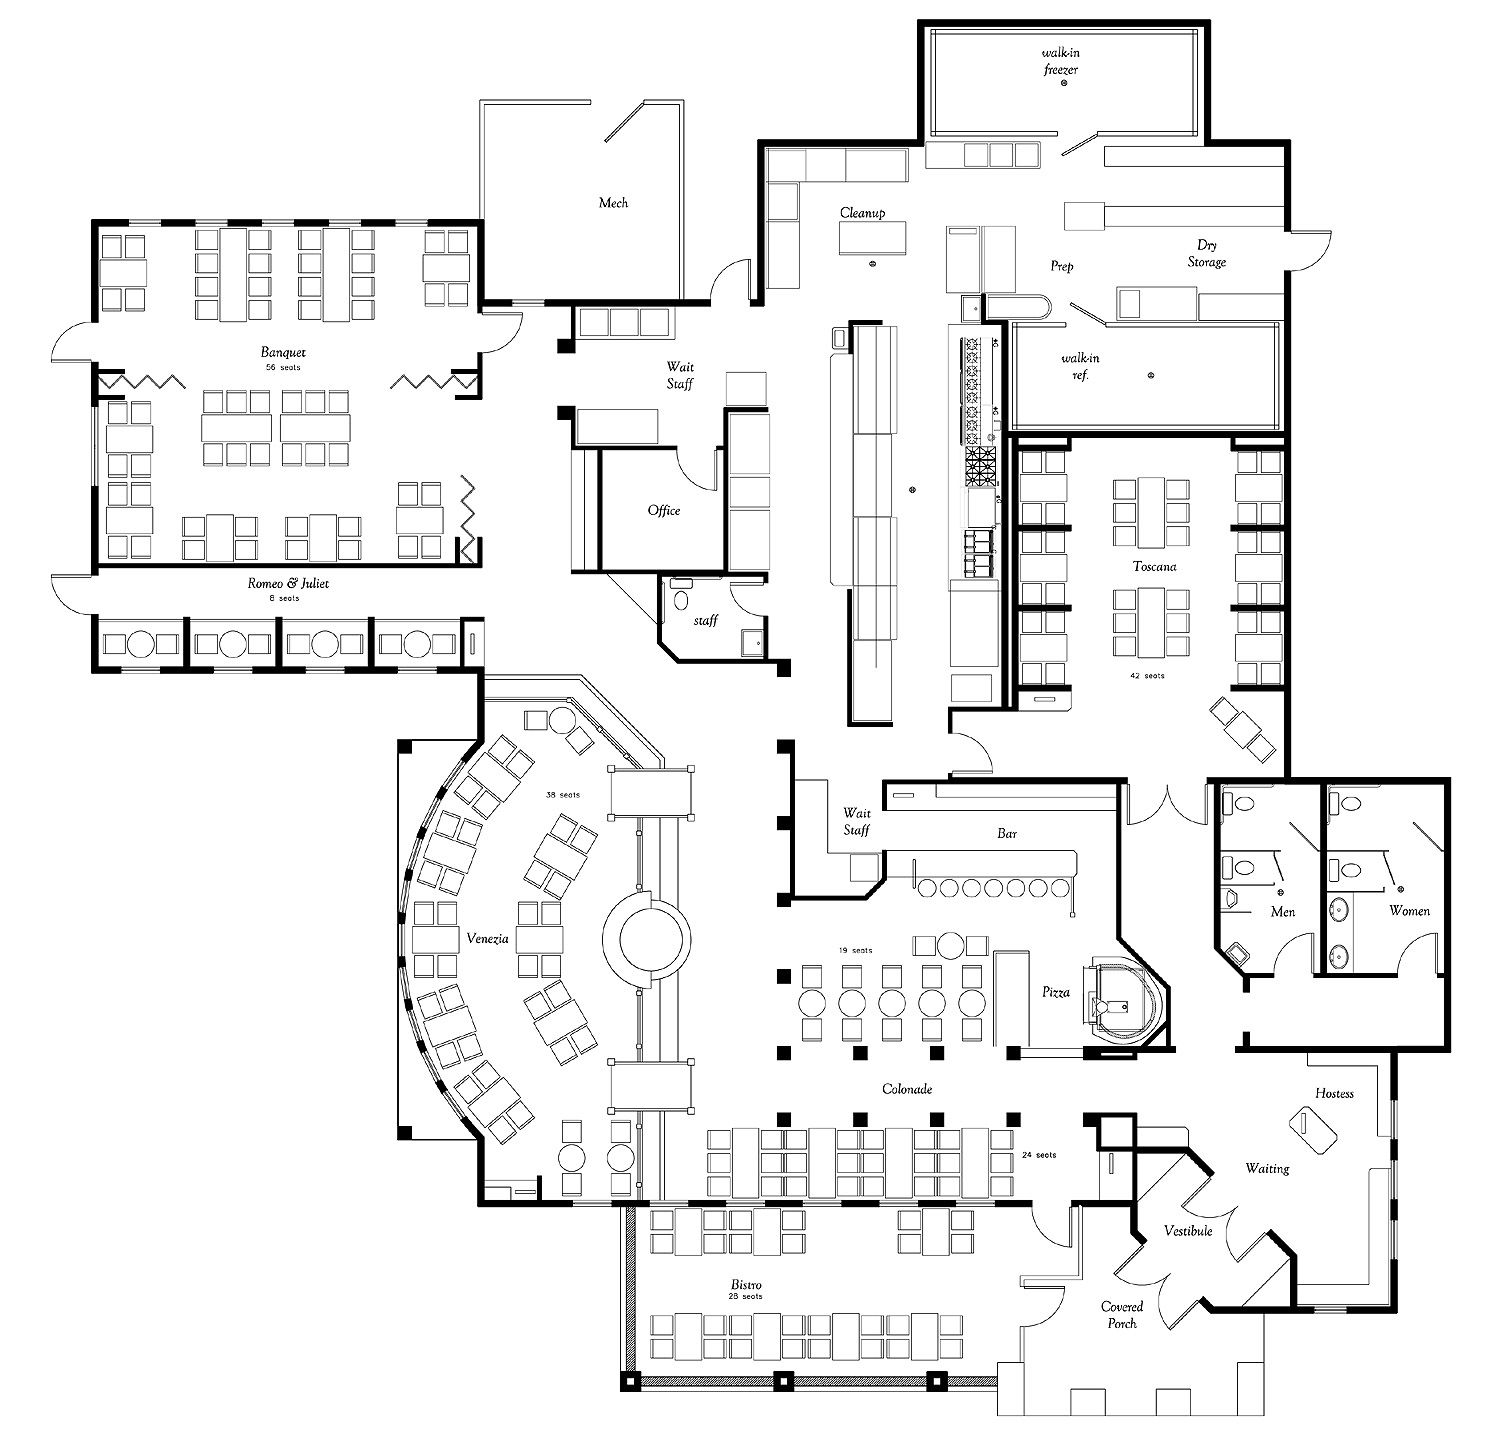 Giovanni italian restaurant floor plan case study for Web design blueprints